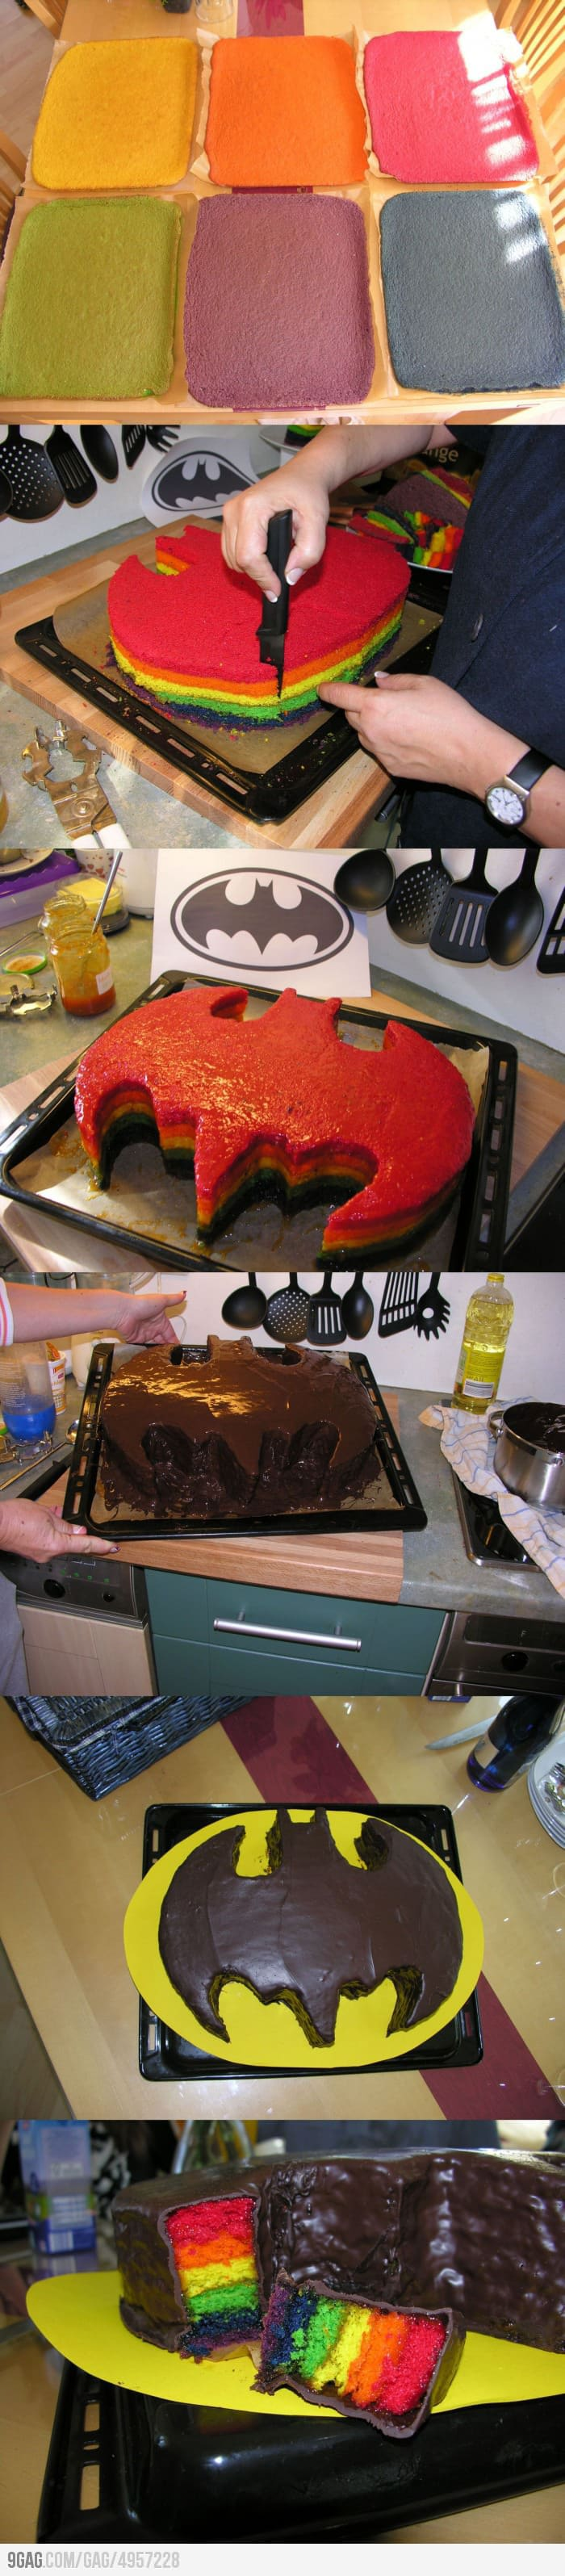 Best Rainbow-Colored Batman Cake Ever Baked